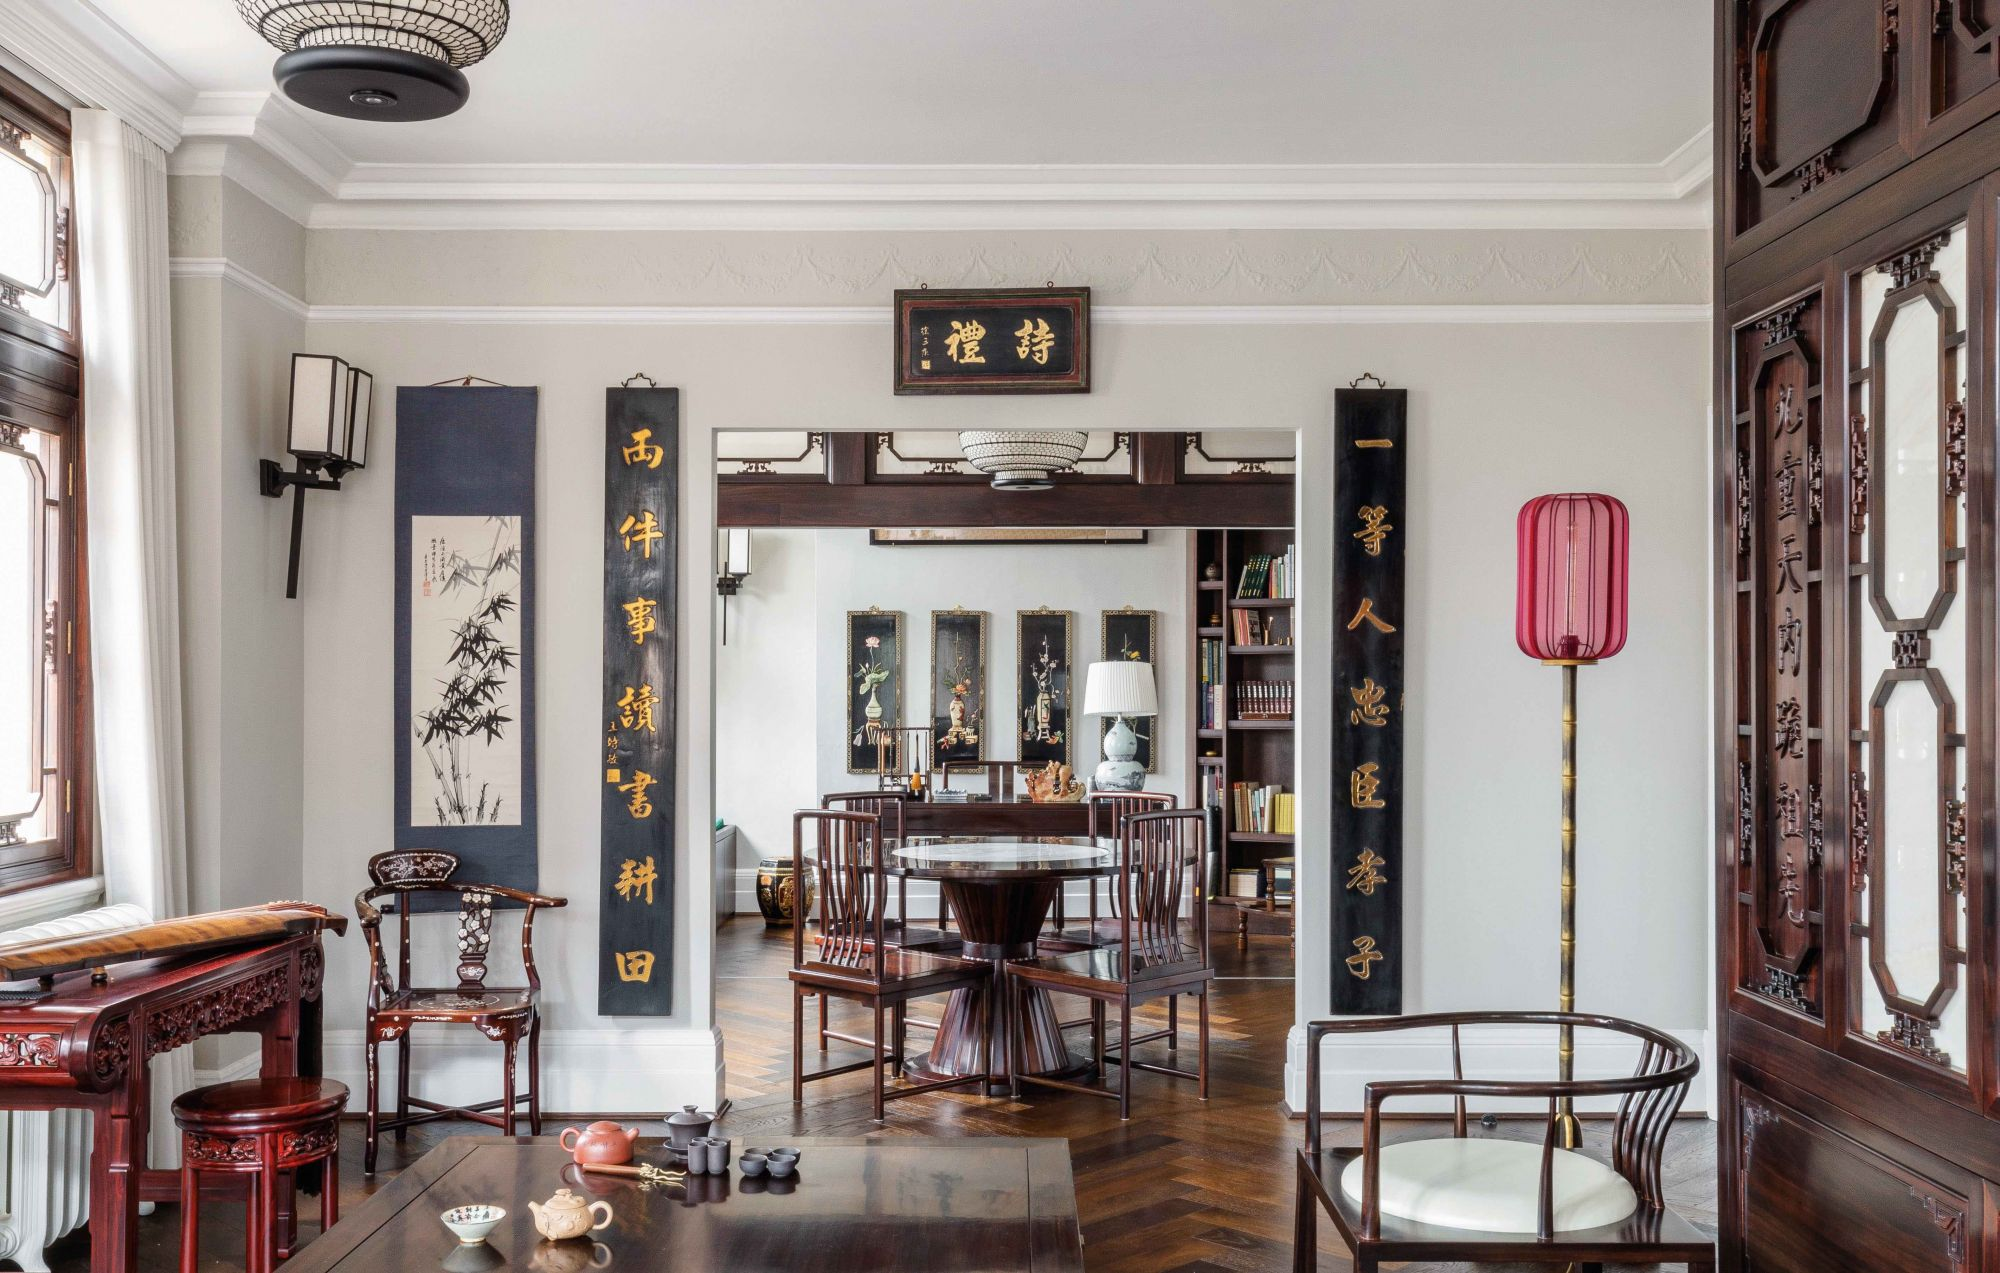 Home Tour: A London Apartment With a Unique Mix of Chinese and European Elements